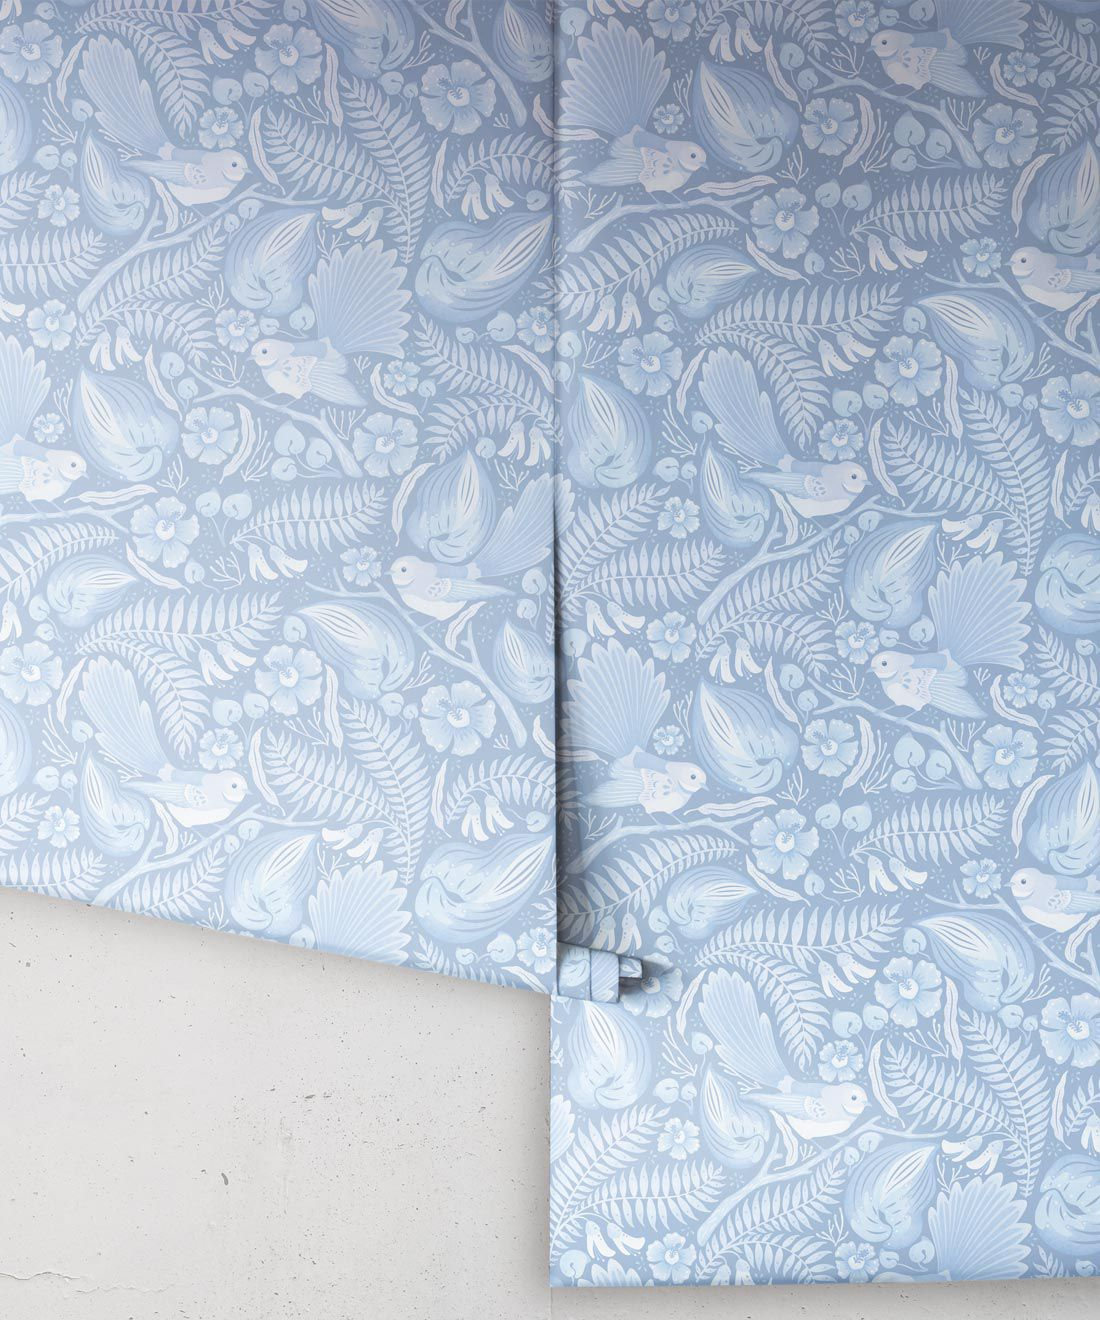 Faintails Wallpaper • New Zealand • Bird Wallpaper • Kowhai Tree • Kowhai Flowers • Light Blue Wallpaper • Ice Colorway • Wallpaper Drops